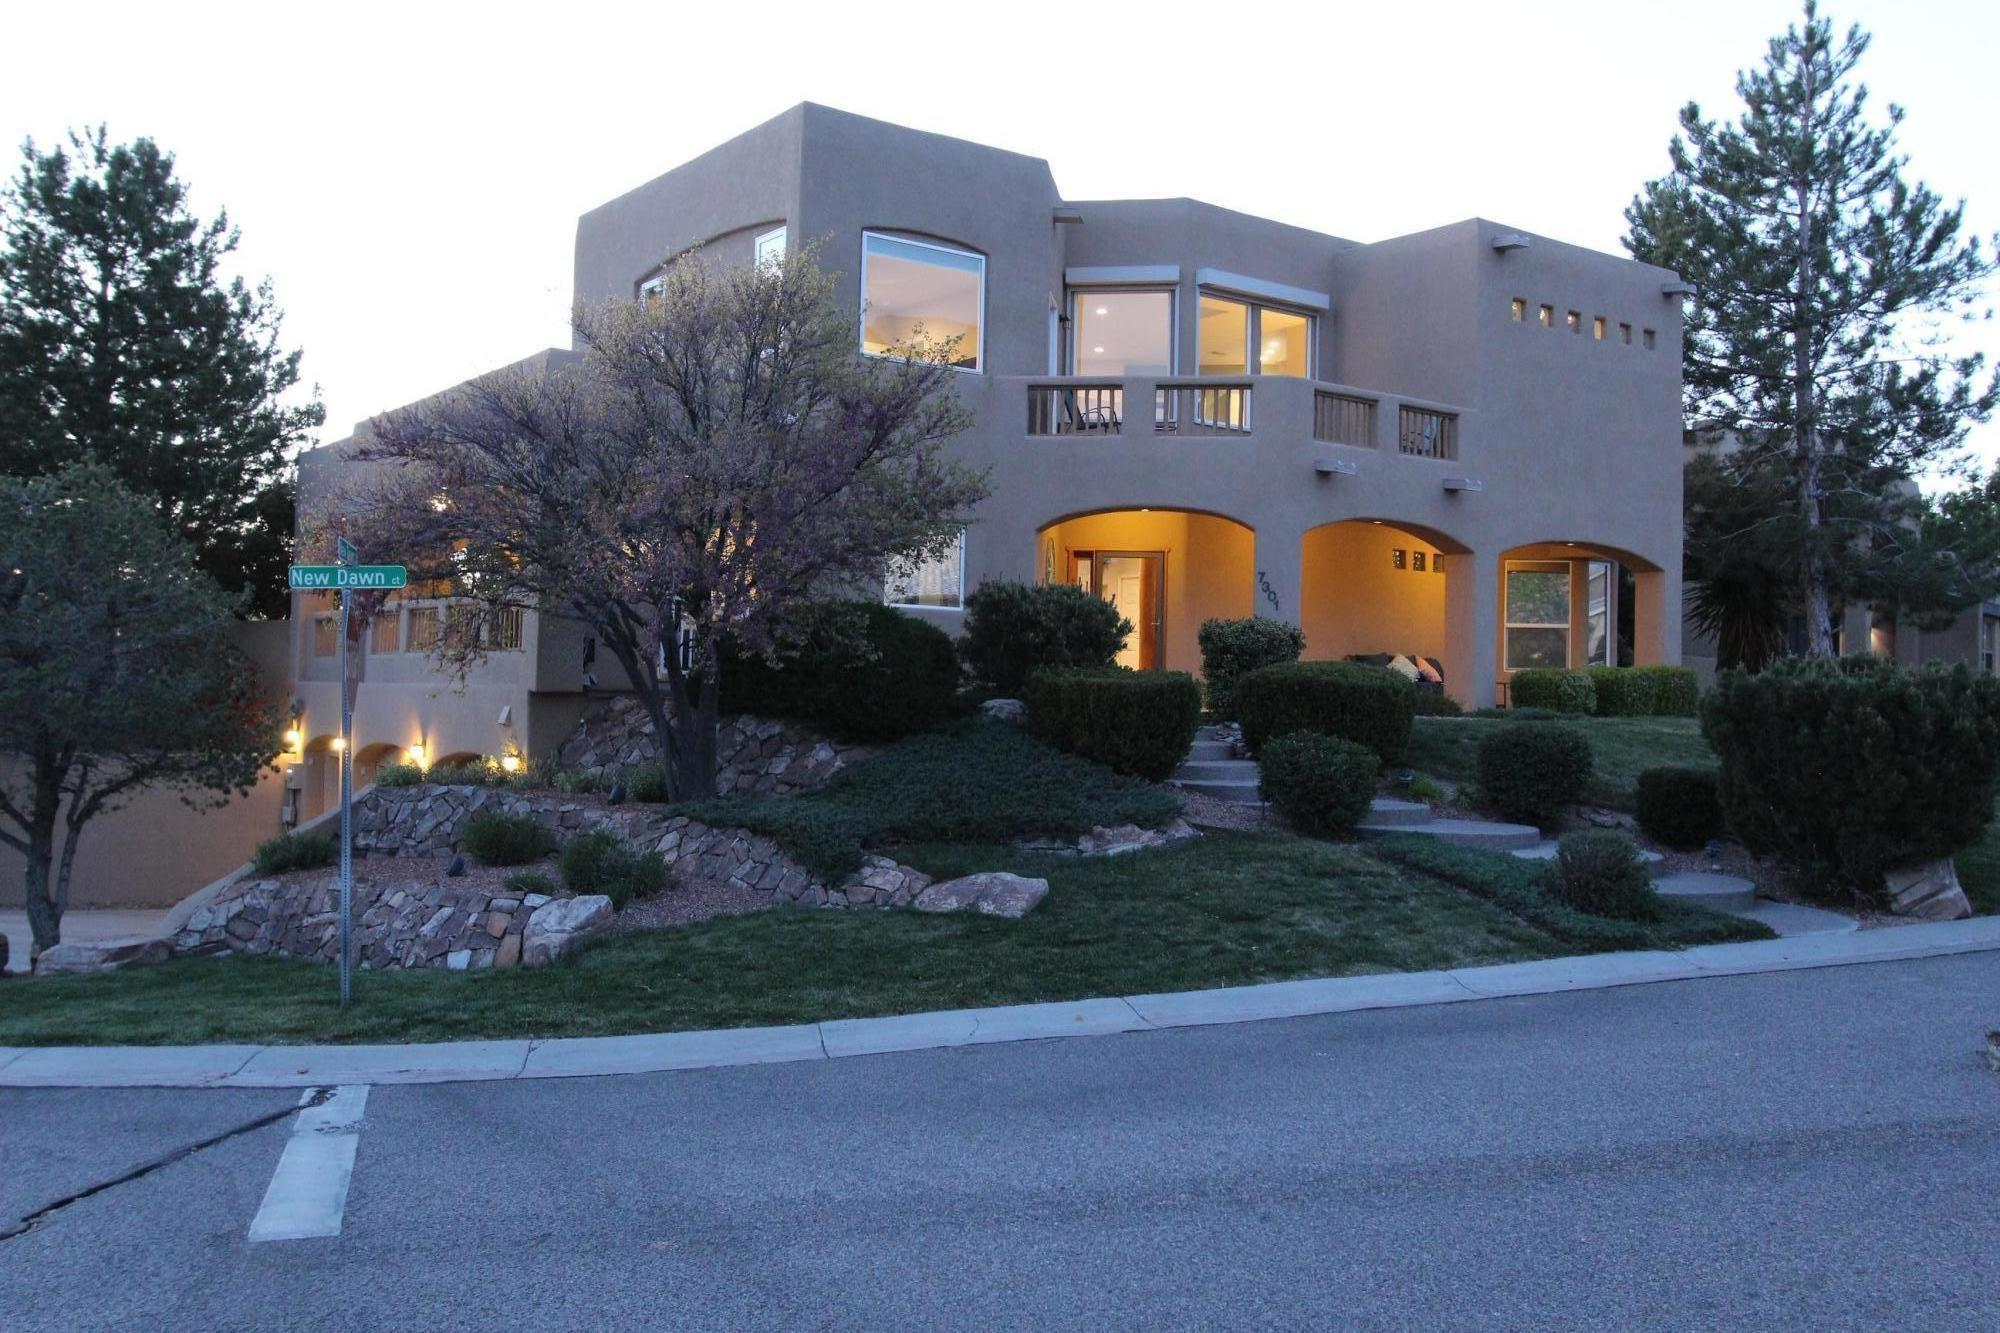 This Sparkling SW Contemporary Home  features fantastic sunrises & mountain views. Full of natural light. Enjoy the views from the spacious kitchen with large island/with seating. Kit.Aid appliances, gas cook top, granite counters, breakfast nook and balcony. The Great Room has new finishes and gas log fire place, vaulted ceilings and wall of windows to lush, intimate BY. Formal DR looks out to BY. Master Suite enjoys FP ,private balcony, jetted tub, shower/double lavs,large walk in closet with washer/dryer. New Guest suite has full bath and private balcony. Two more bedrooms on main floor. Office/loft has built incoffee bar/sink. Oversized  1200 sq. ft. 3 car garage with storage/workshop and half bath.  Beautiful windows throughout. Laundry Rm on main. This Home Shines!